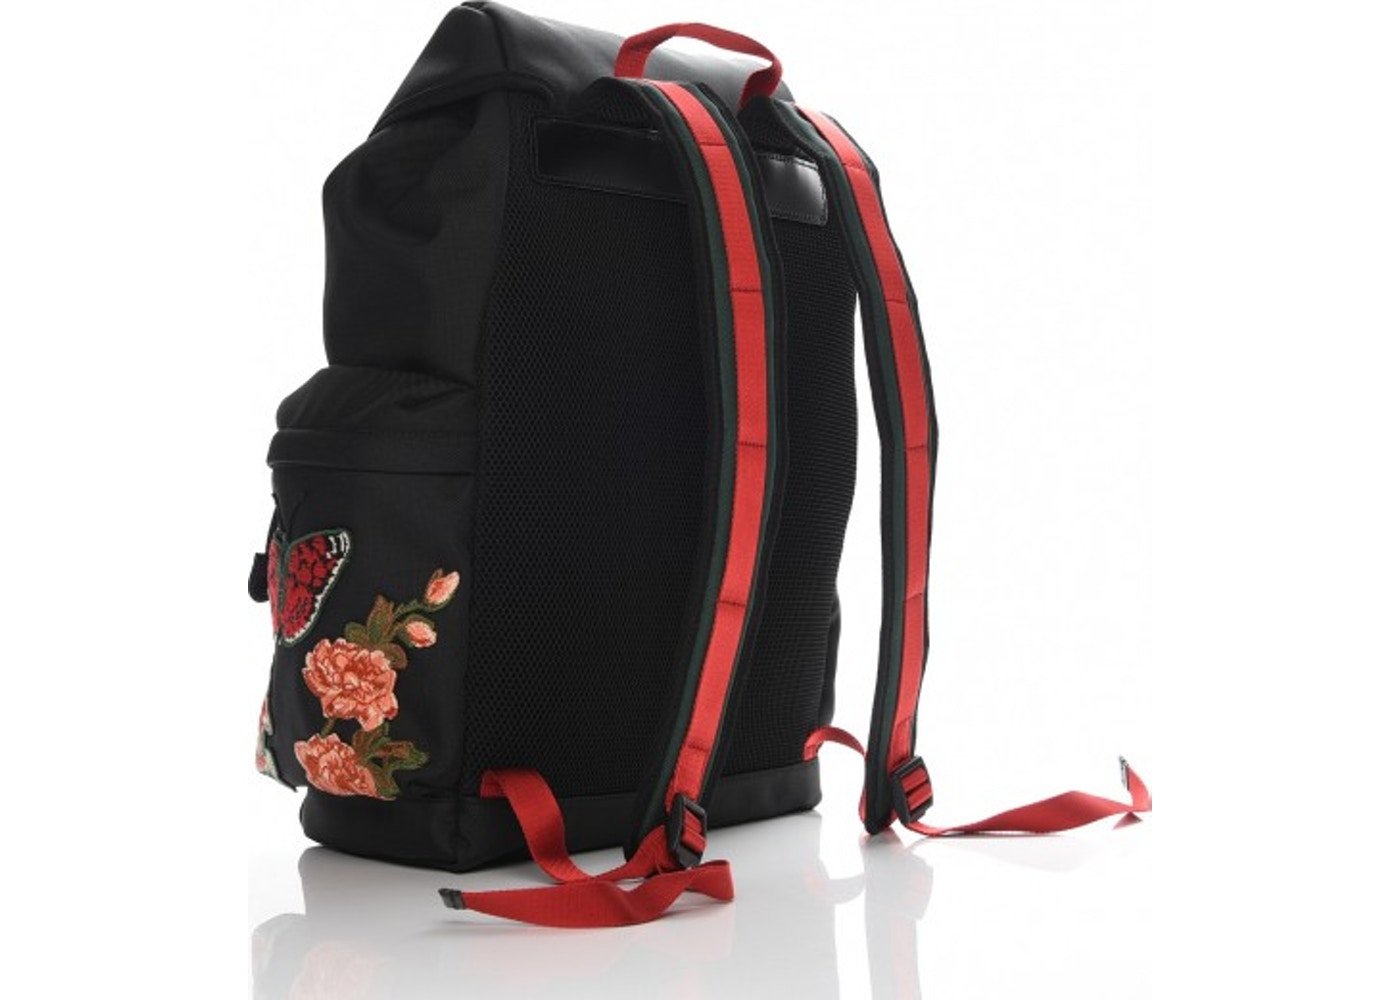 d67fcce982a7 Sell. or Ask. View All Bids. Gucci Techno Canvas Web Drawstring Backpack  Embroidered Black